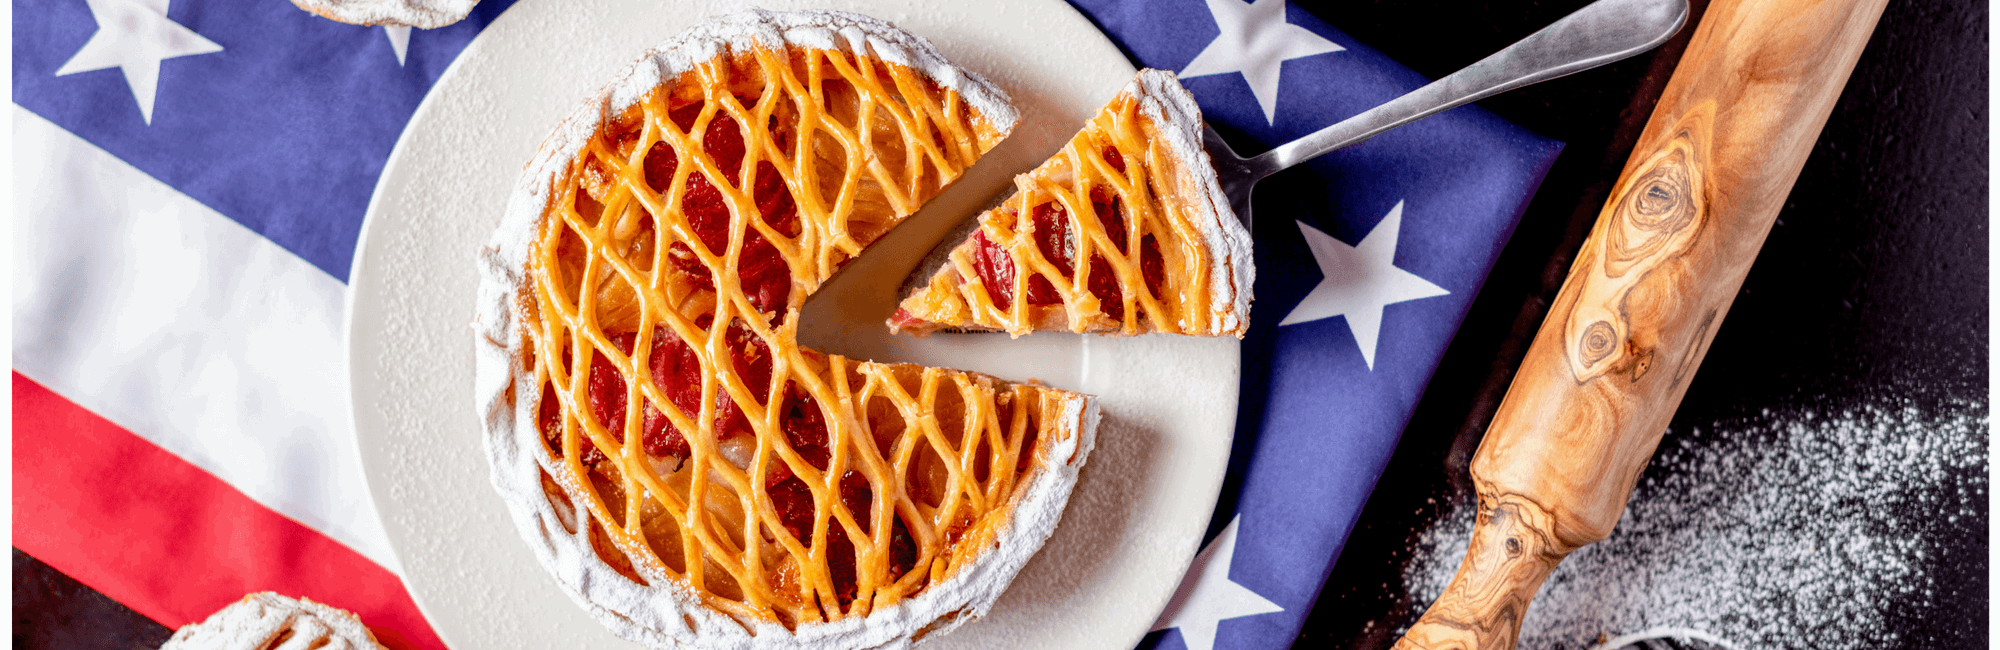 4th of July Celebrations at Balthazar Restaurant, Covent Garden